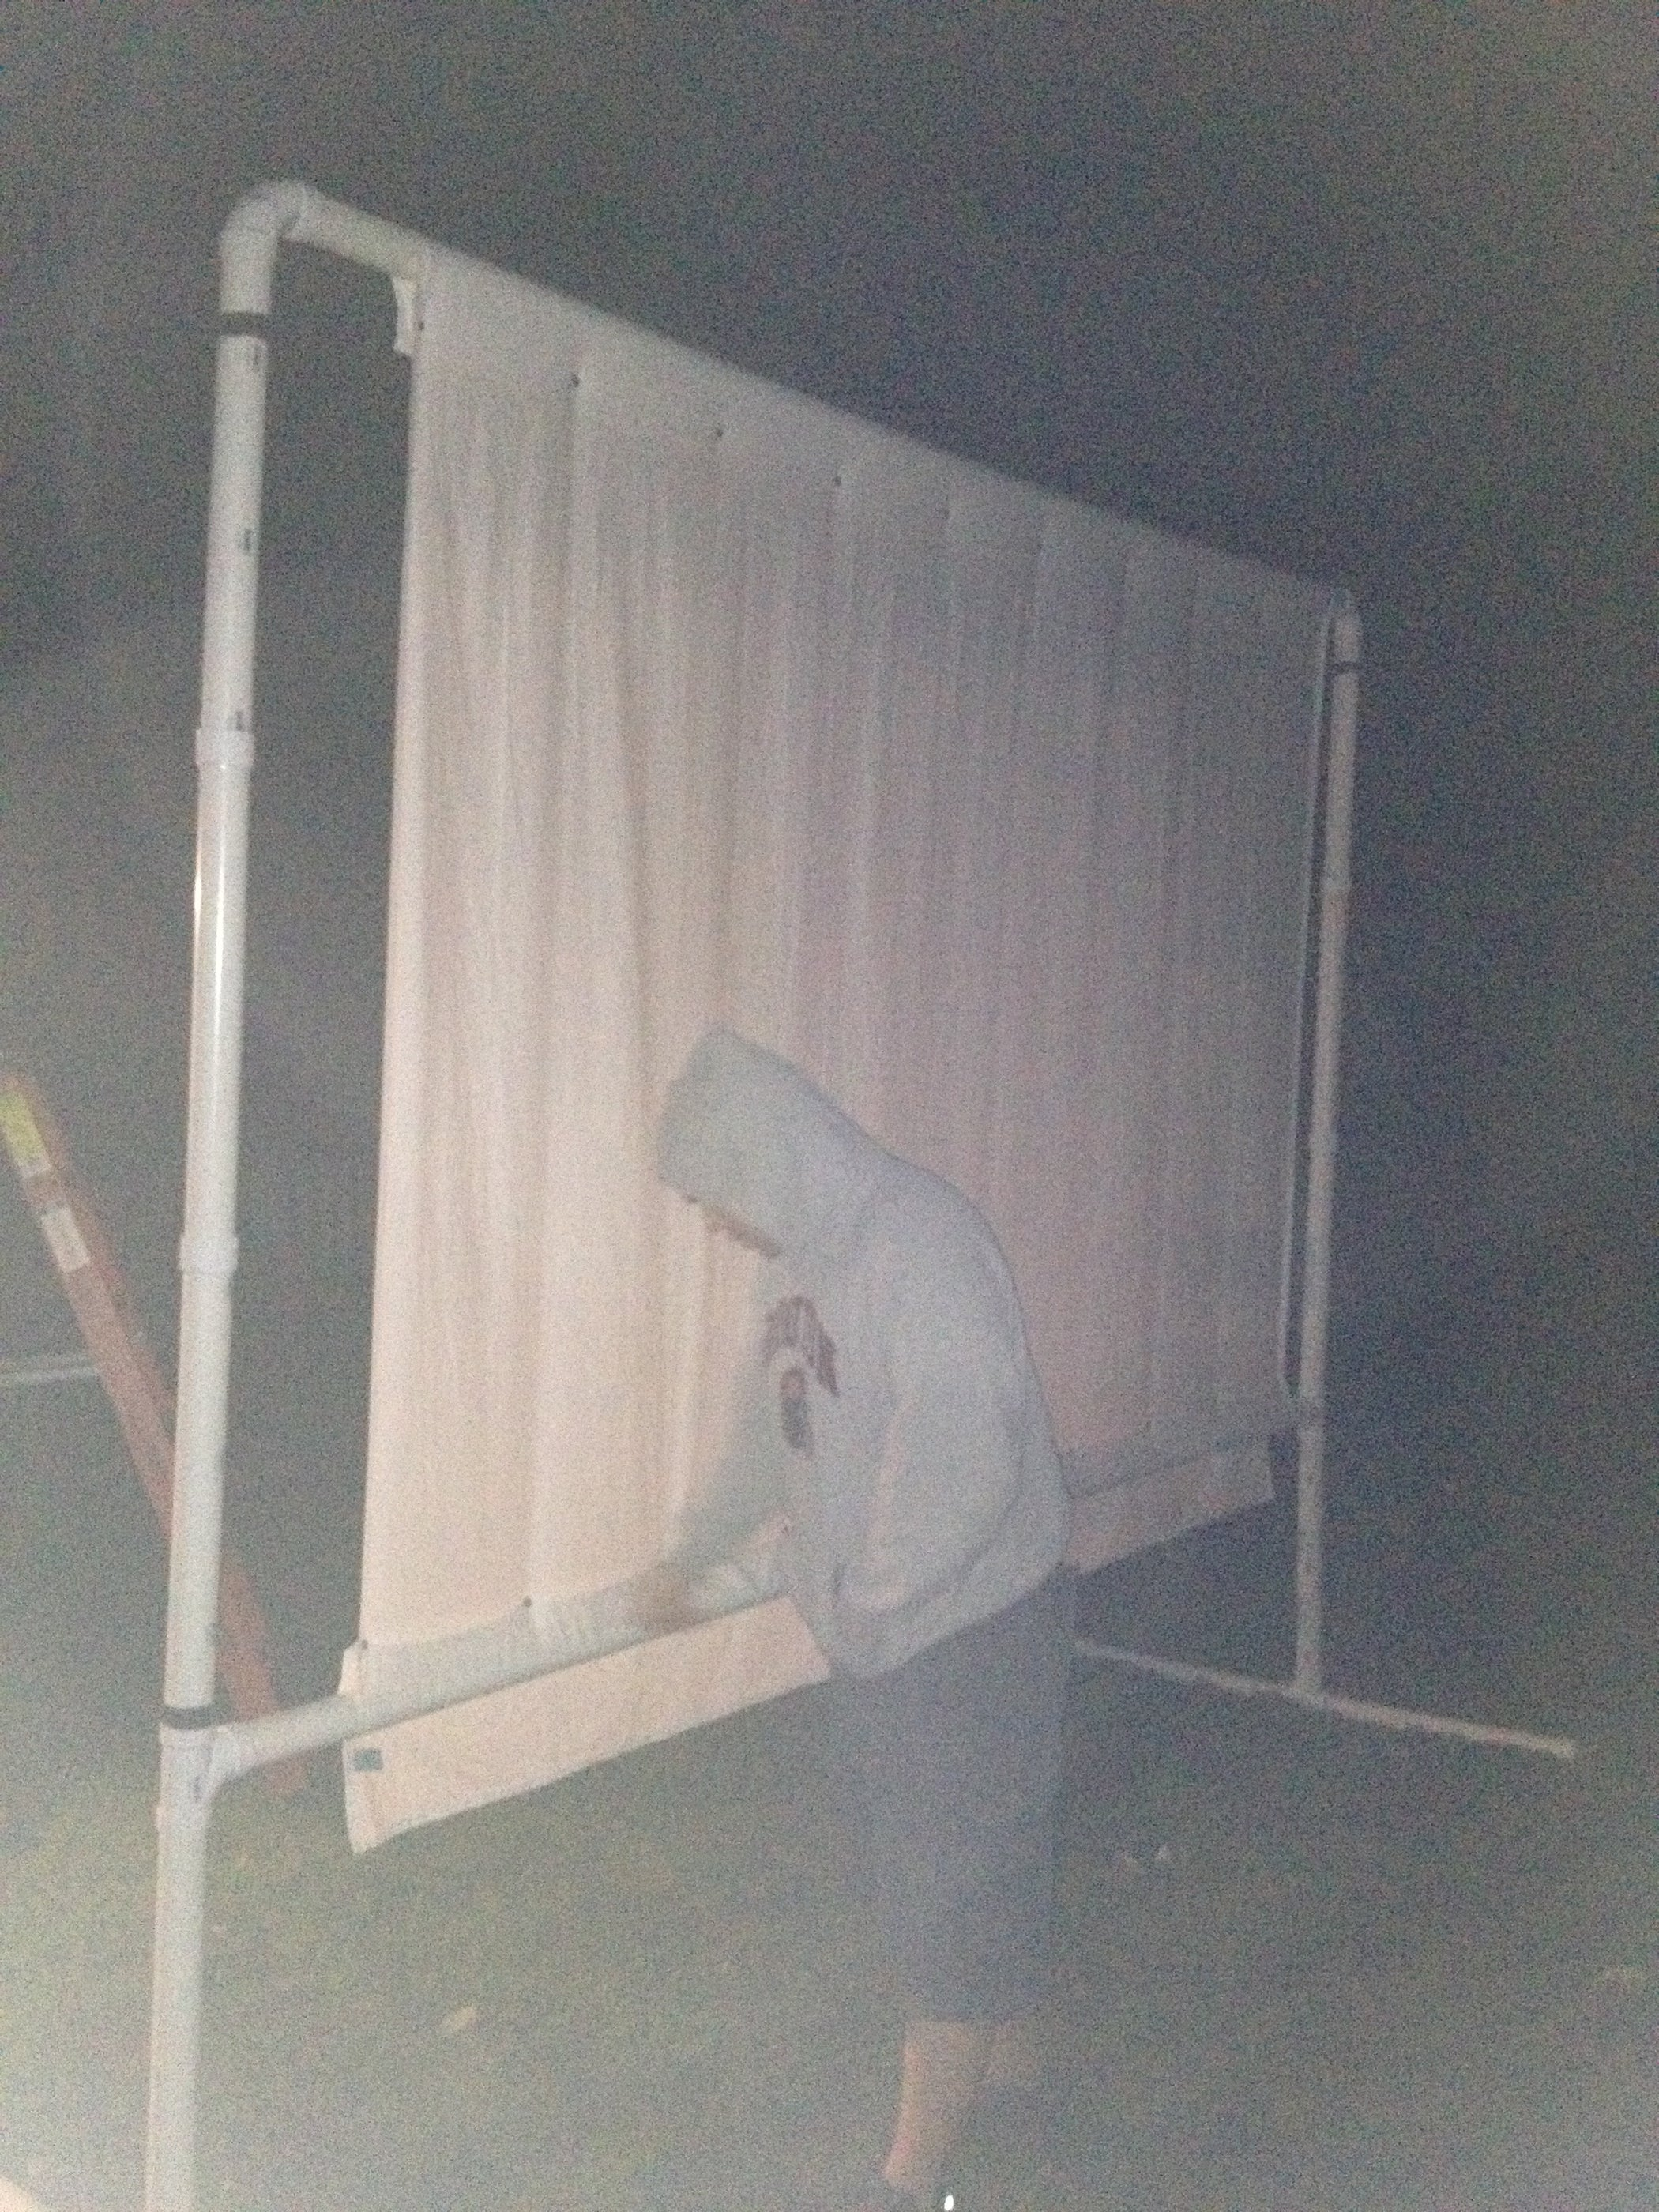 Outdoor Projector Screen On A Budget: 6 Steps (with Pictures